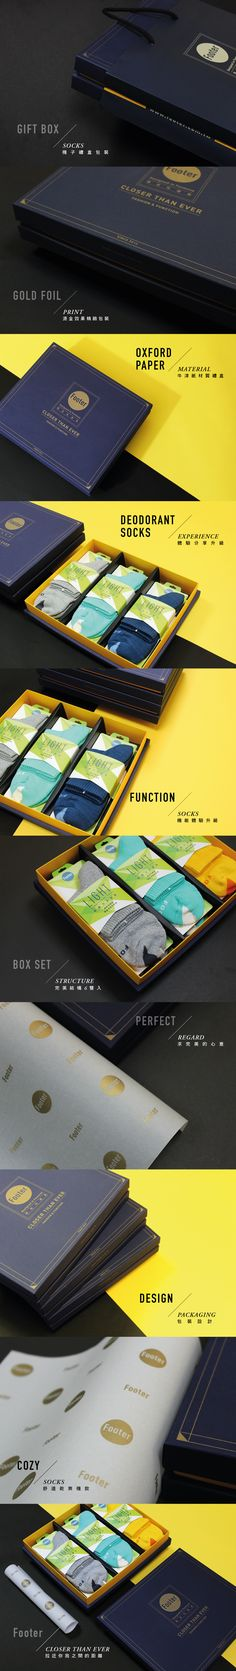 Footer / Gift Box Set / Packaging Design